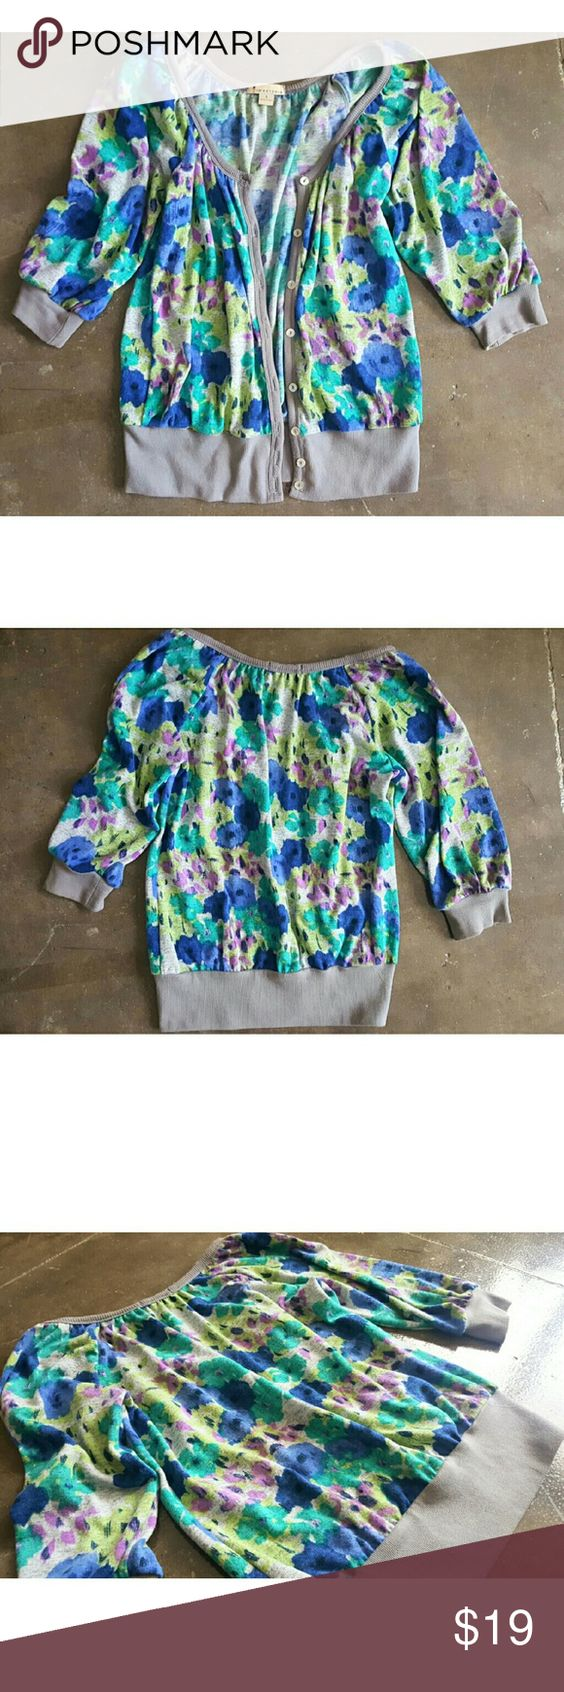 🔥MOVING SALE🔥🆕Watercolor Cardigan🆕 Patches of blues, greens and purples with a gray piping around collar and hem. Front facing irredescent buttons. Pullover slouchy boyfriend style. Meant to hang loose. 3/4 sleeves. Gently worn but in like new condition. No stains, discolorations, etc. 100% cotton. Machine washable! Sweaters Cardigans